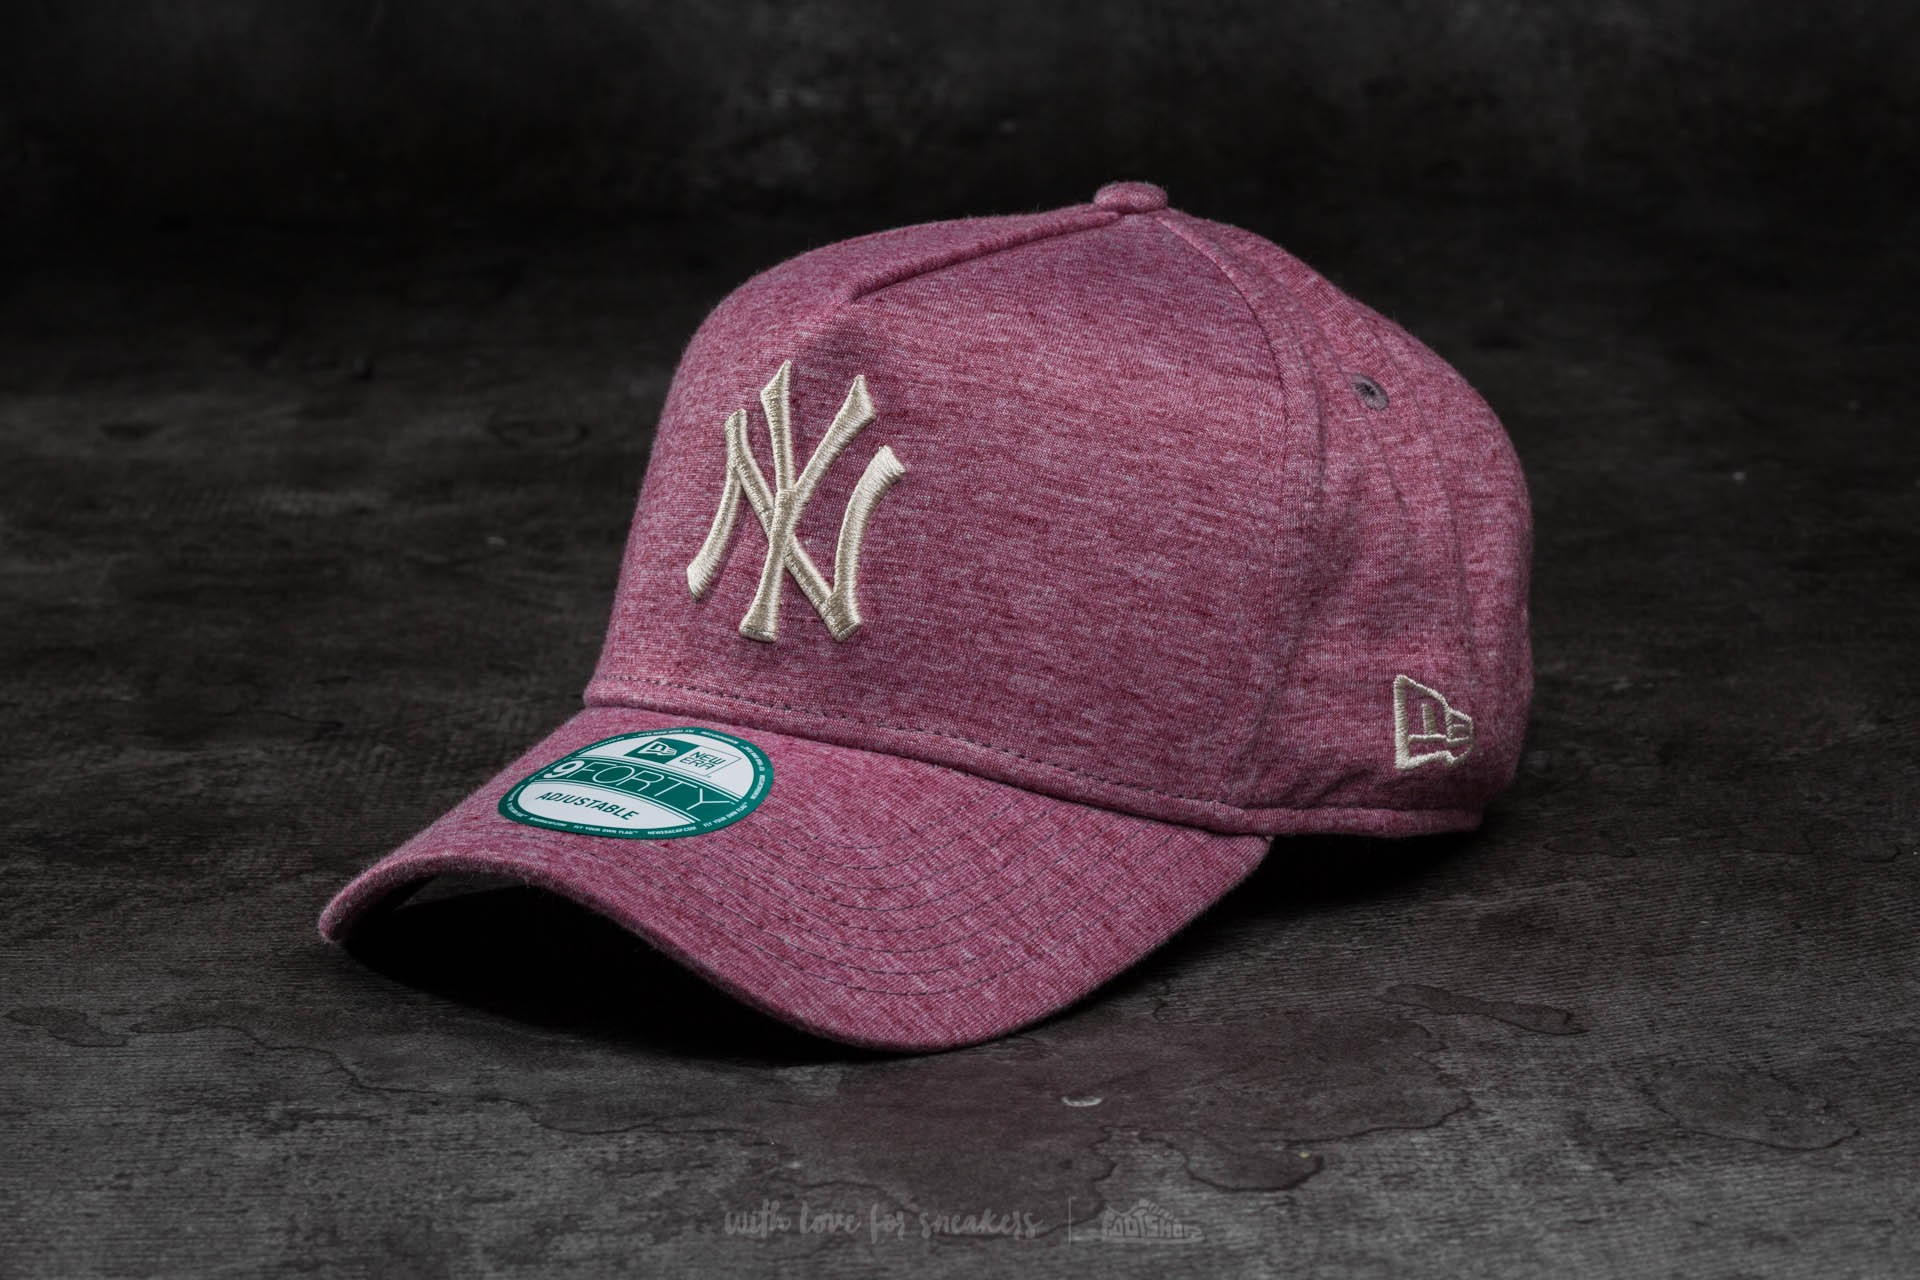 027e82d27ac New Era Cap 9Forty Adjustable Major League Baseball Jersey Flock New York  Yankees Cap Maroon